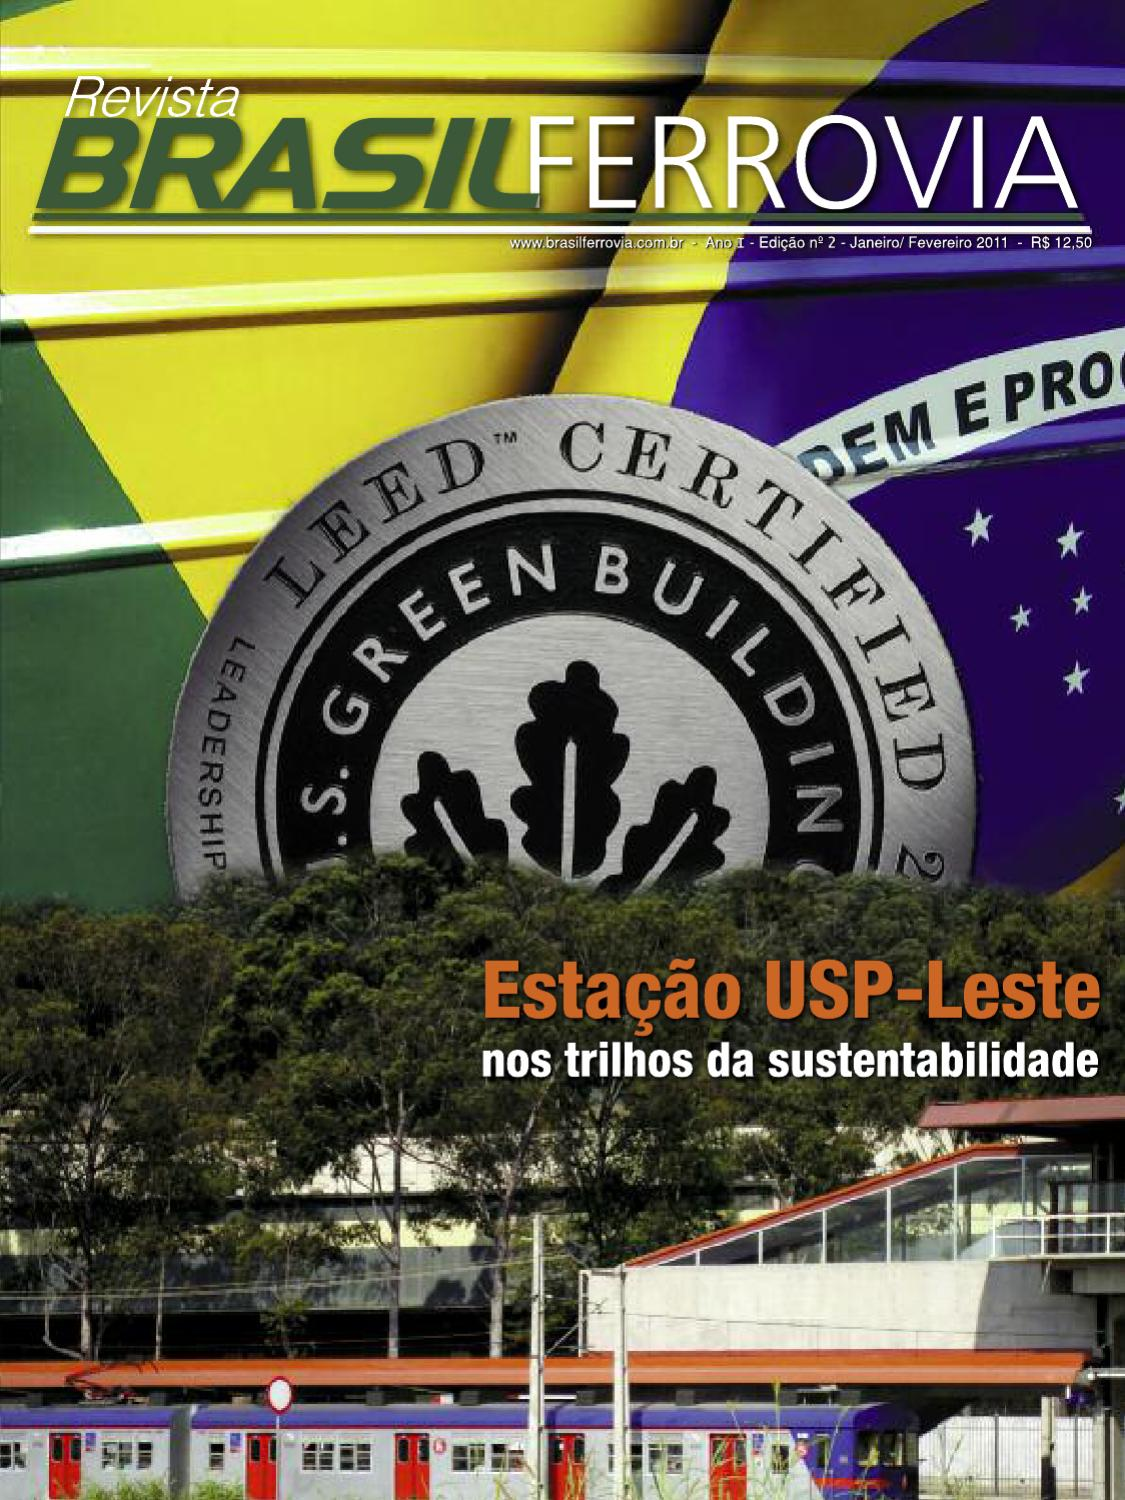 Jan Fev11 ok Ed.Jan Fev11 web4 by Brasil Ferrovia - issuu 4a8800ebbe